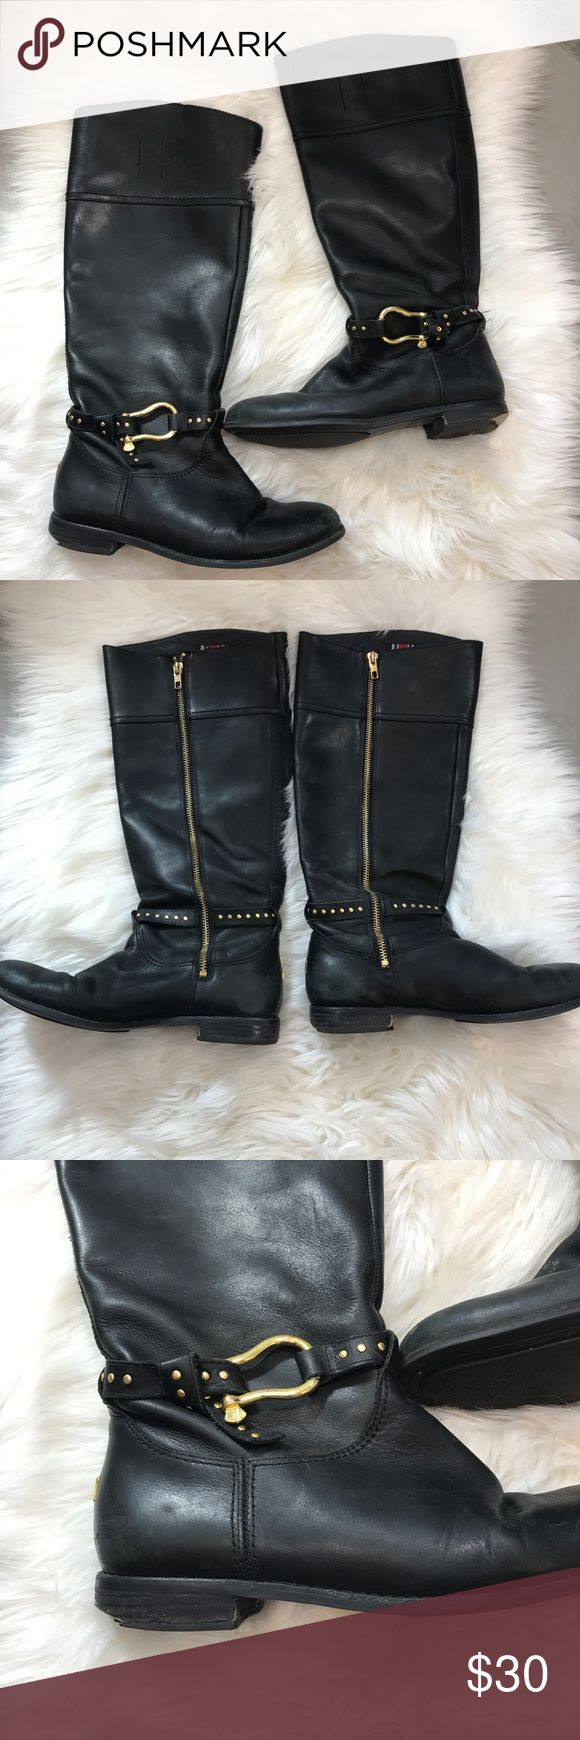 Women's Sperry Black Leather Knee High Boots In used condition. There are multiple flaws. All flaws are shown in close up pictures. Boots are fully functional. No rips or holes. Soles are in fantastic shape with lots of life left. Buttery soft leather. Good embellished studs and zips. Heels on both shoes are worn. Size 7.5, true to size! Could possibly be repaired for cheap! Sperry Shoes Over the Knee Boots